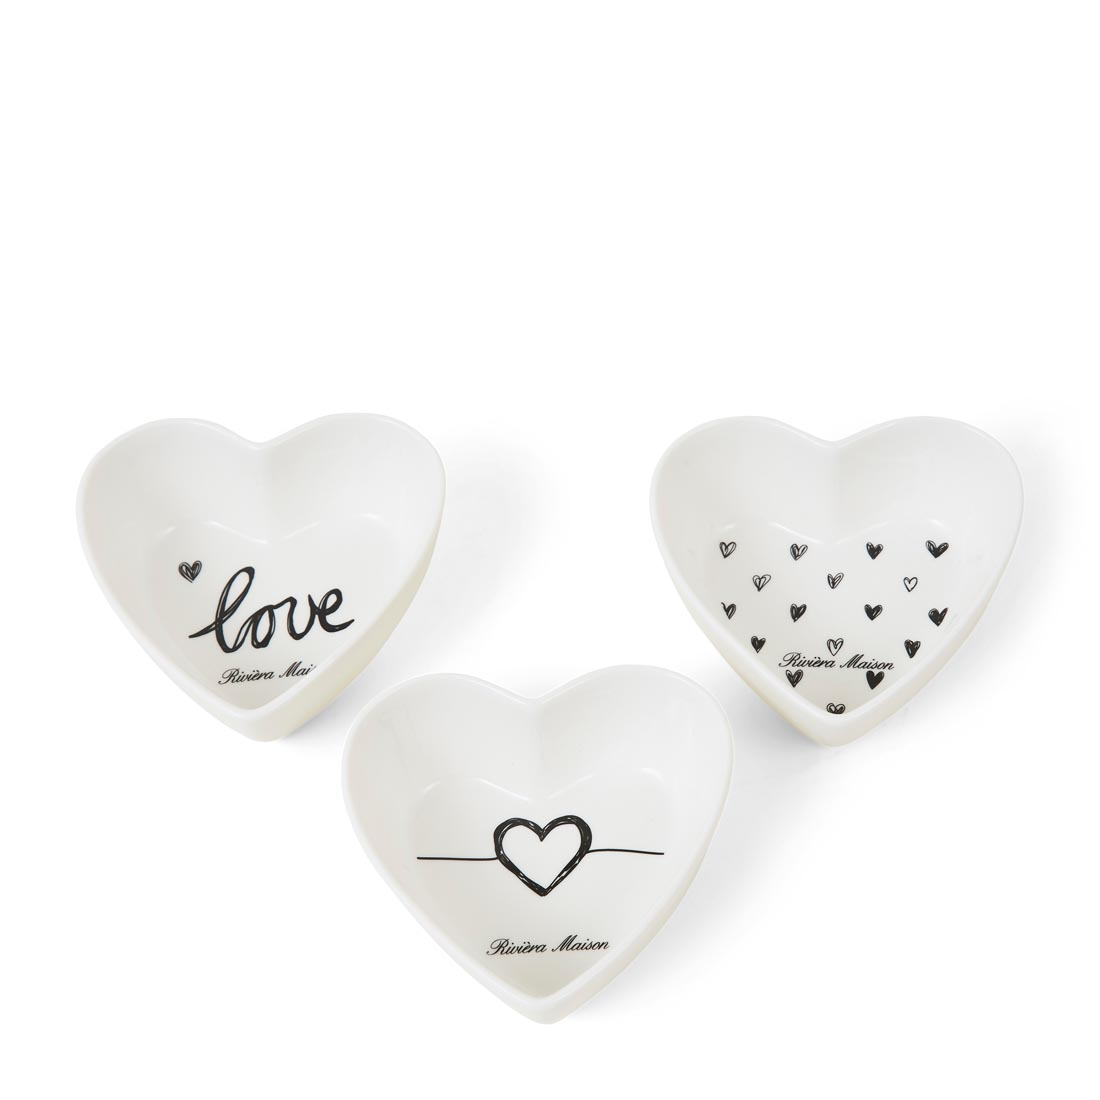 Lovely Hearts Schalen im 3-er Set